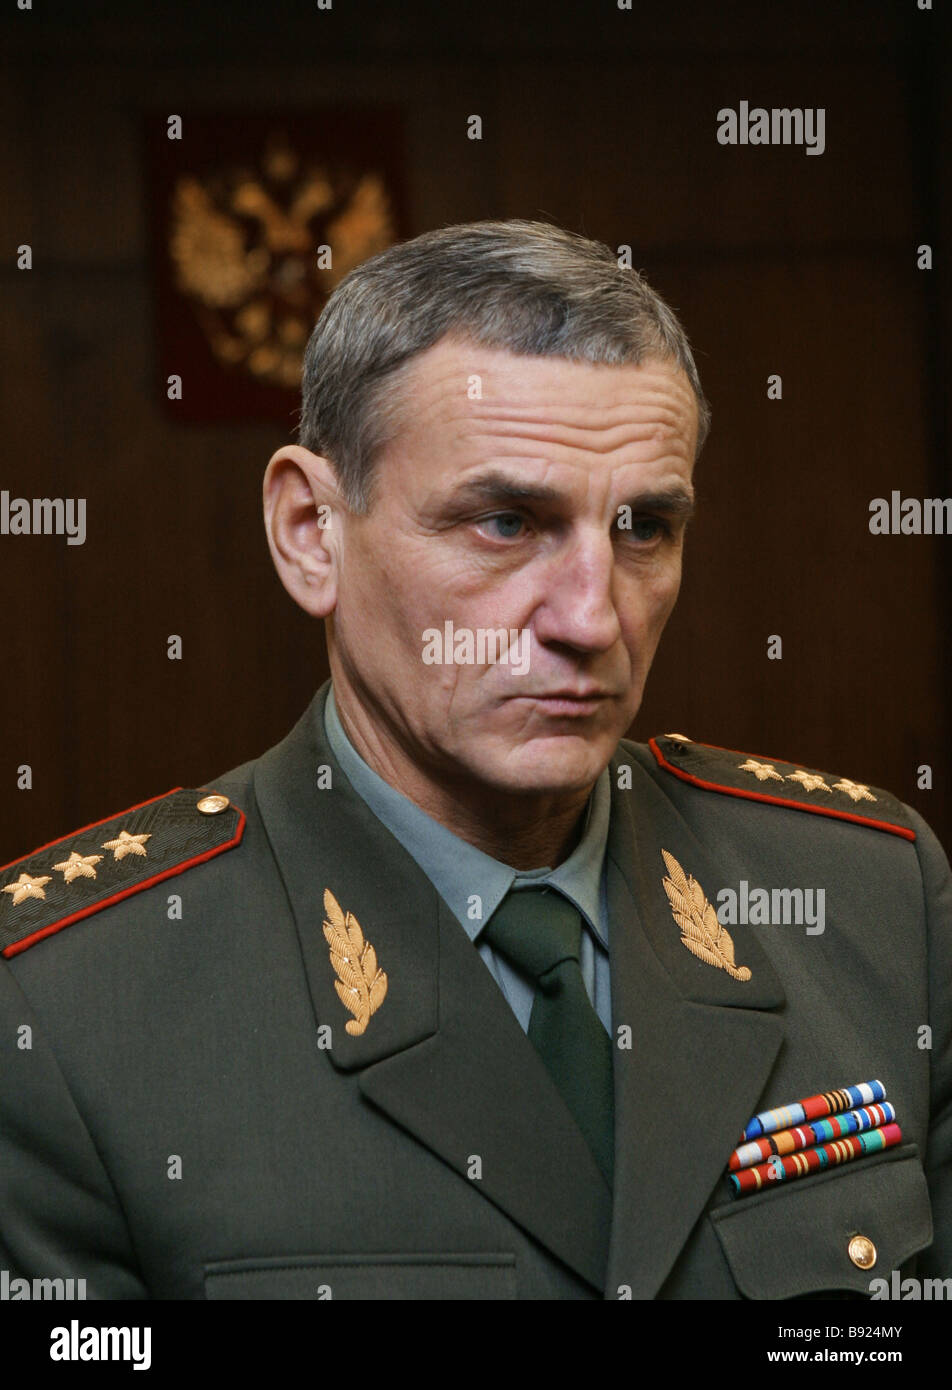 Personnel reshuffles in the Government: Belousov goes to the Kremlin, but Ulyukaev arrives 17.06.2013 73